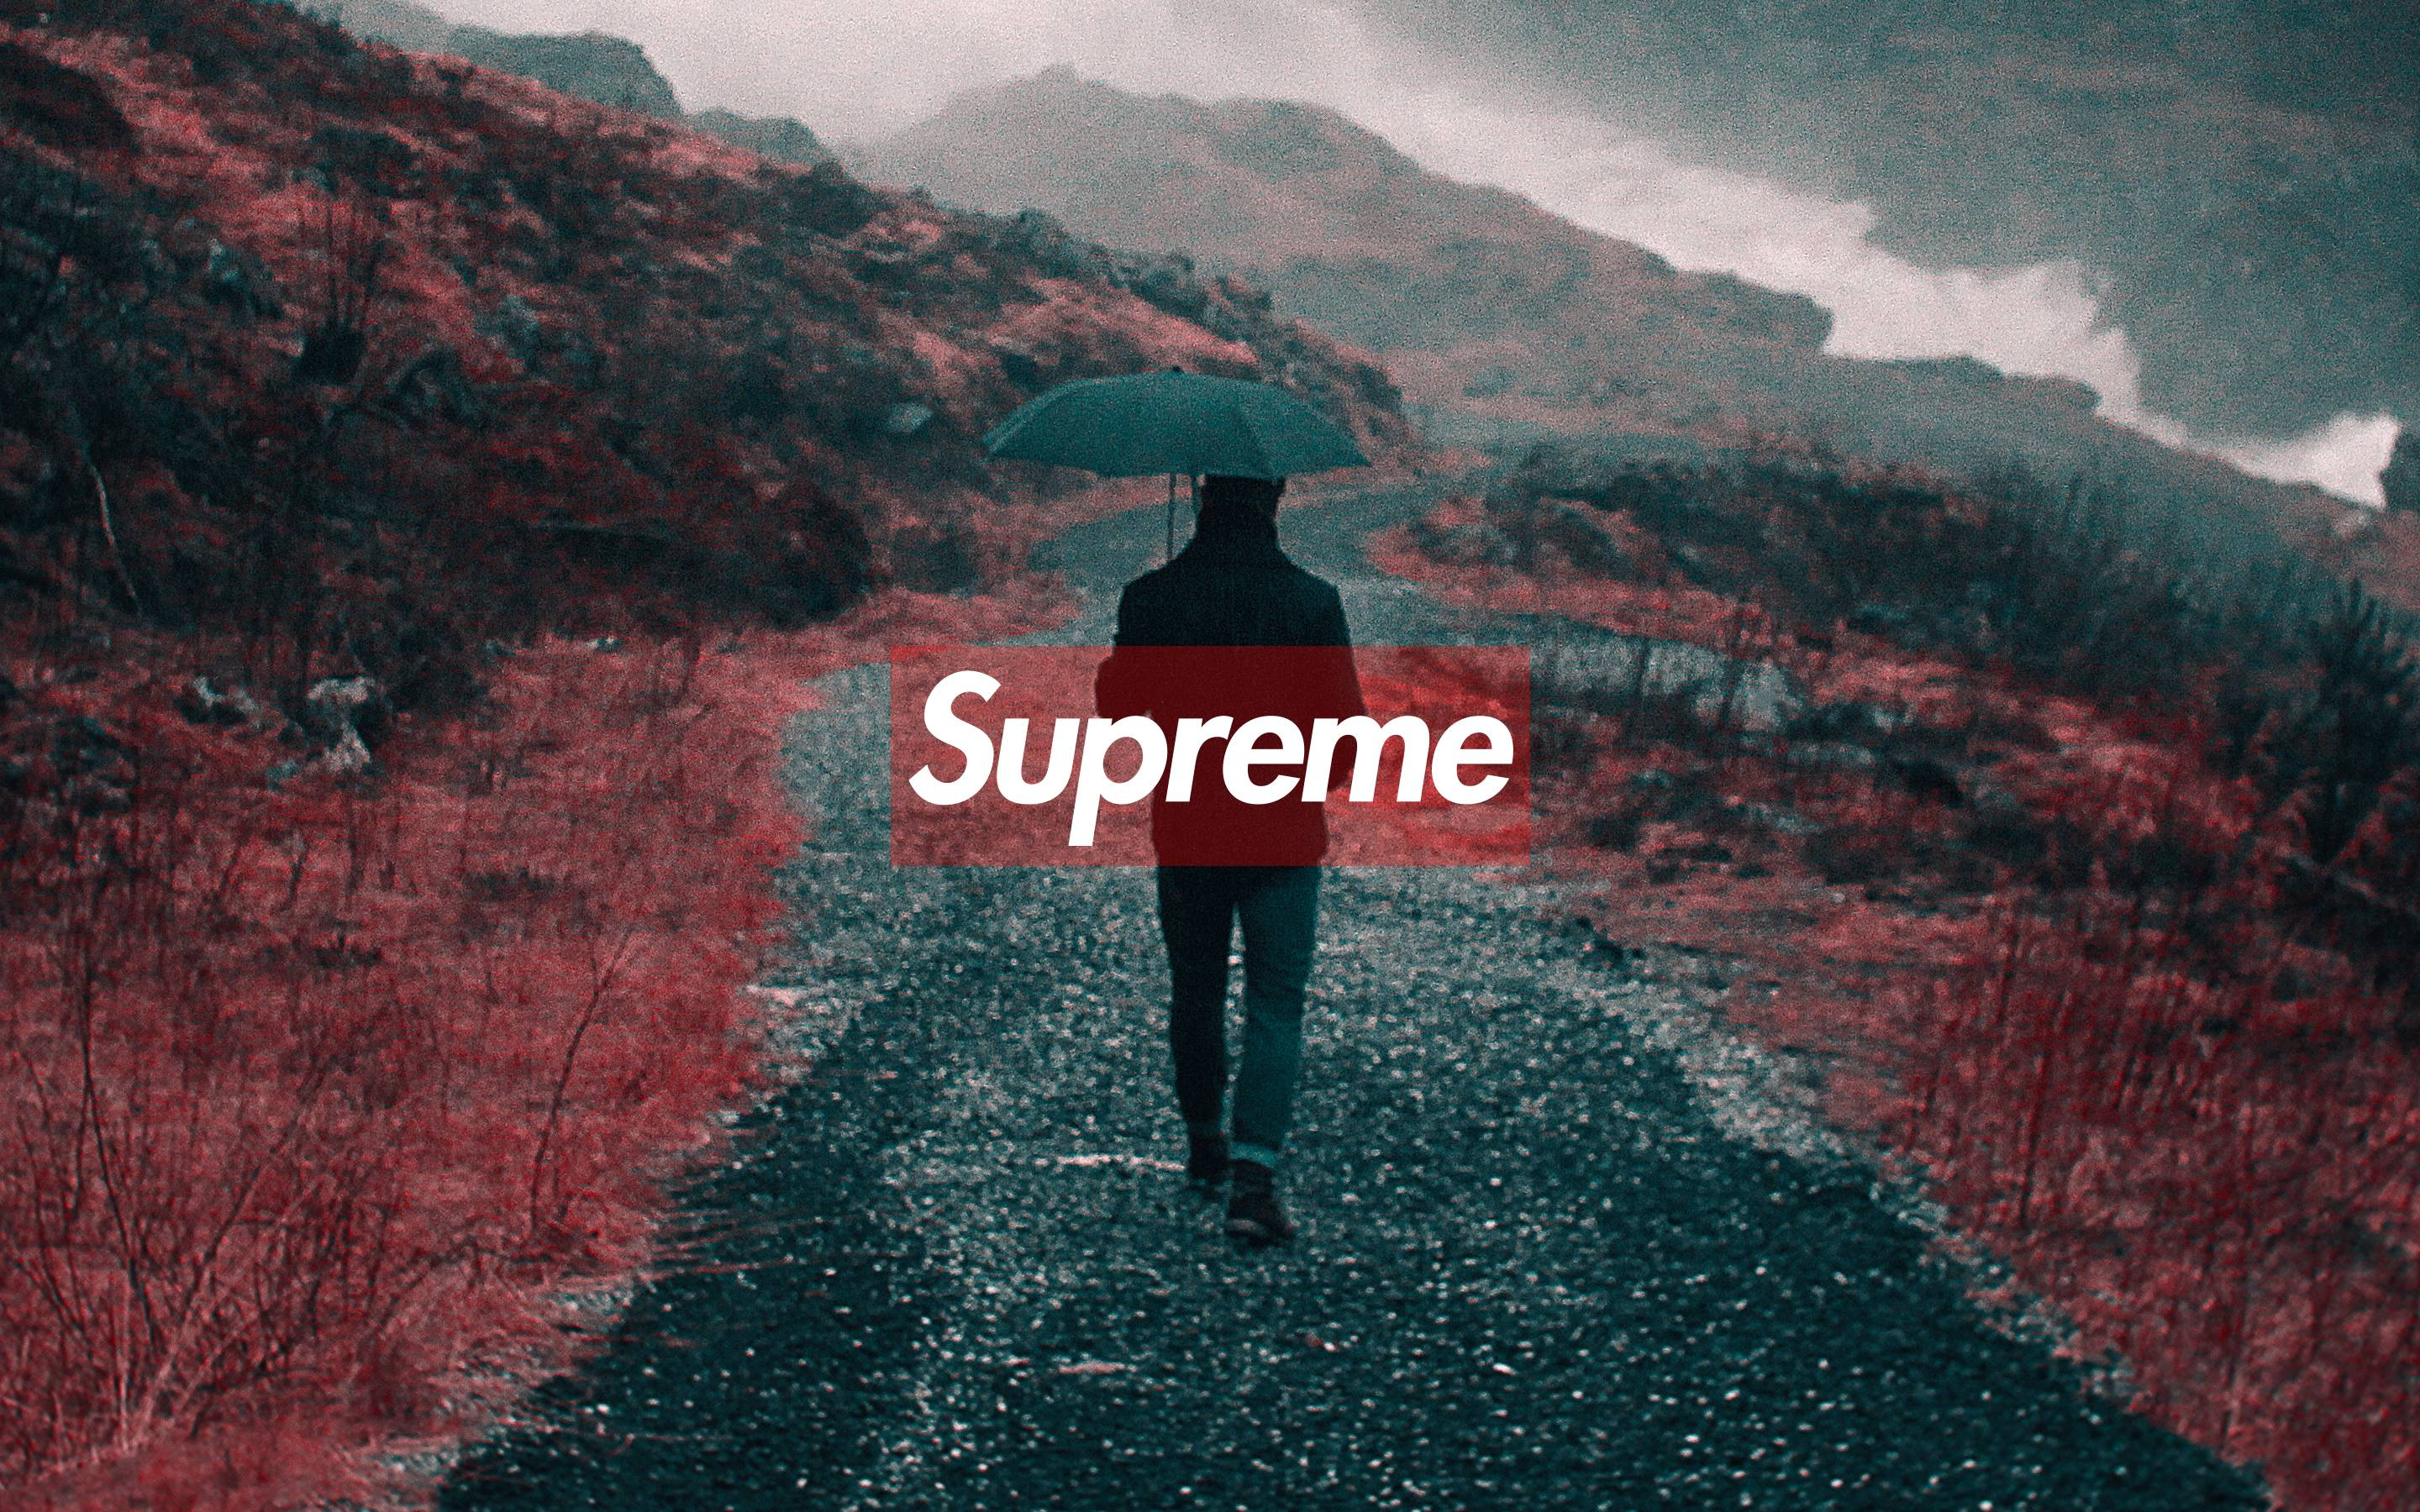 Supreme Wallpaper Full Hd Is Cool Wallpapers Supreme Wallpaper 4k 2880x1800 Download Hd Wallpaper Wallpapertip